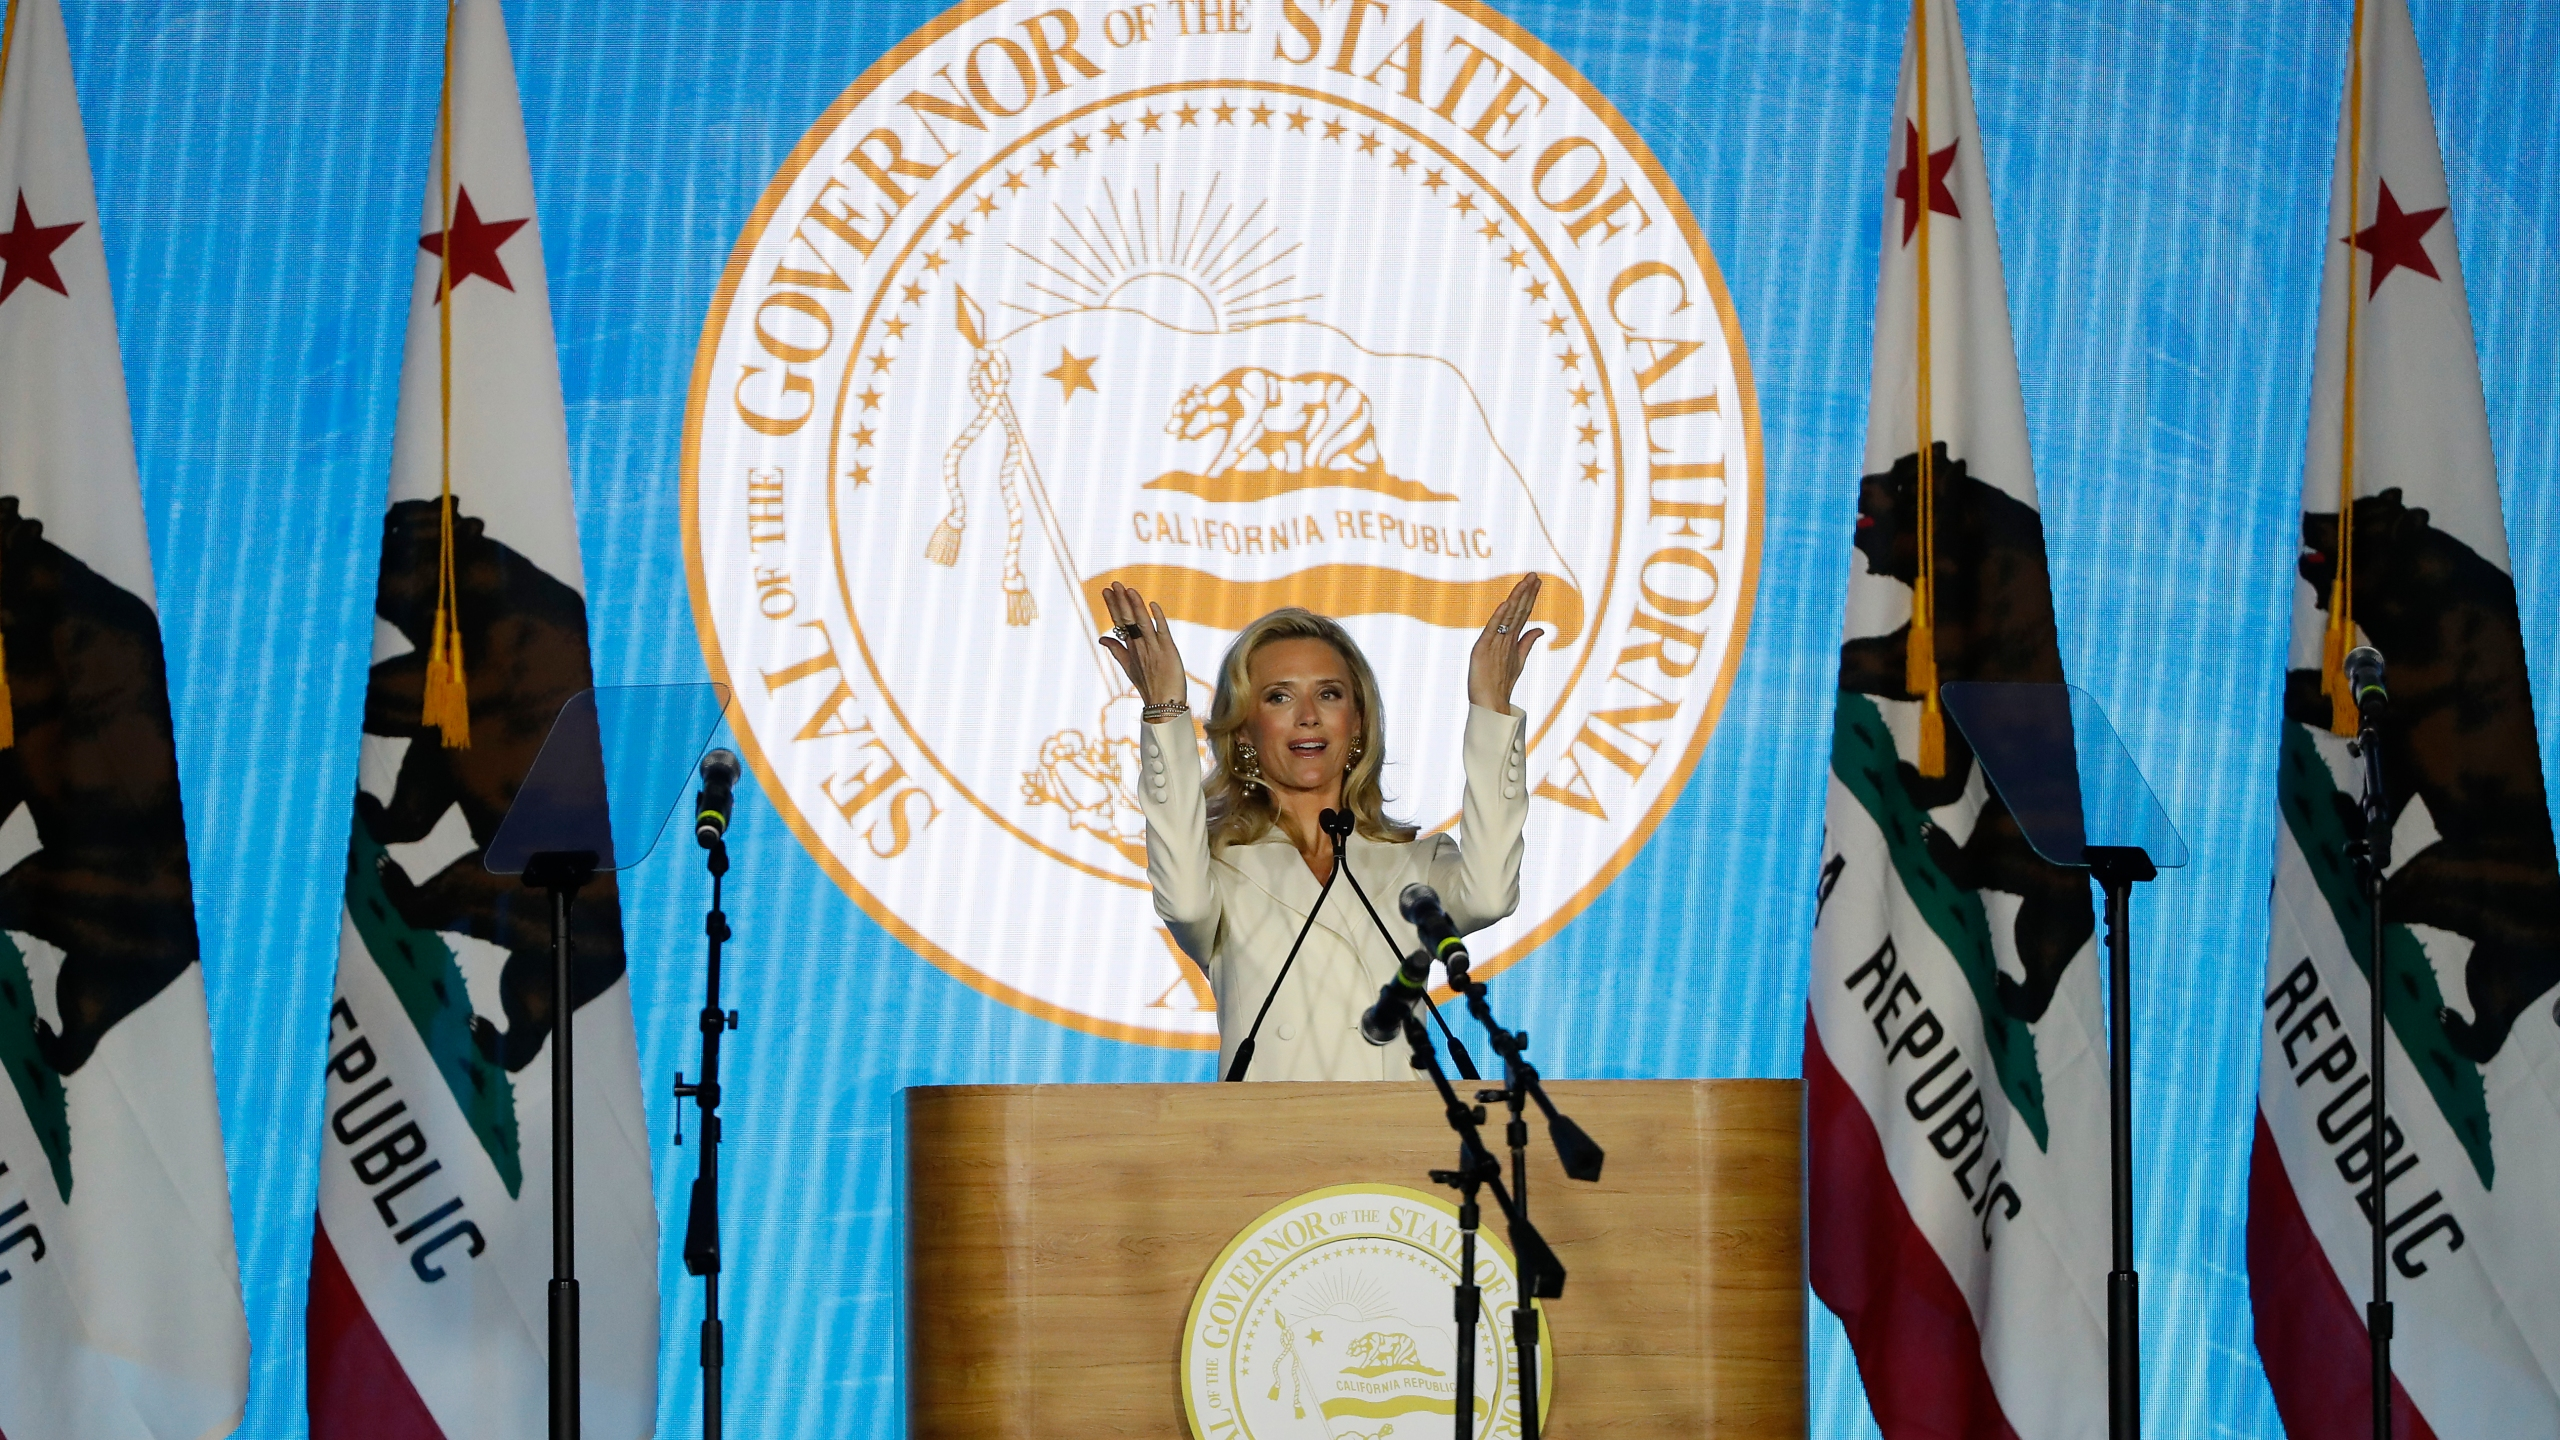 Jennifer Siebel Newsom speaks on stage during the inauguration of husband Gavin Newsom as governor of California on Jan. 7, 2019, in Sacramento. (Stephen Lam/Getty Images)